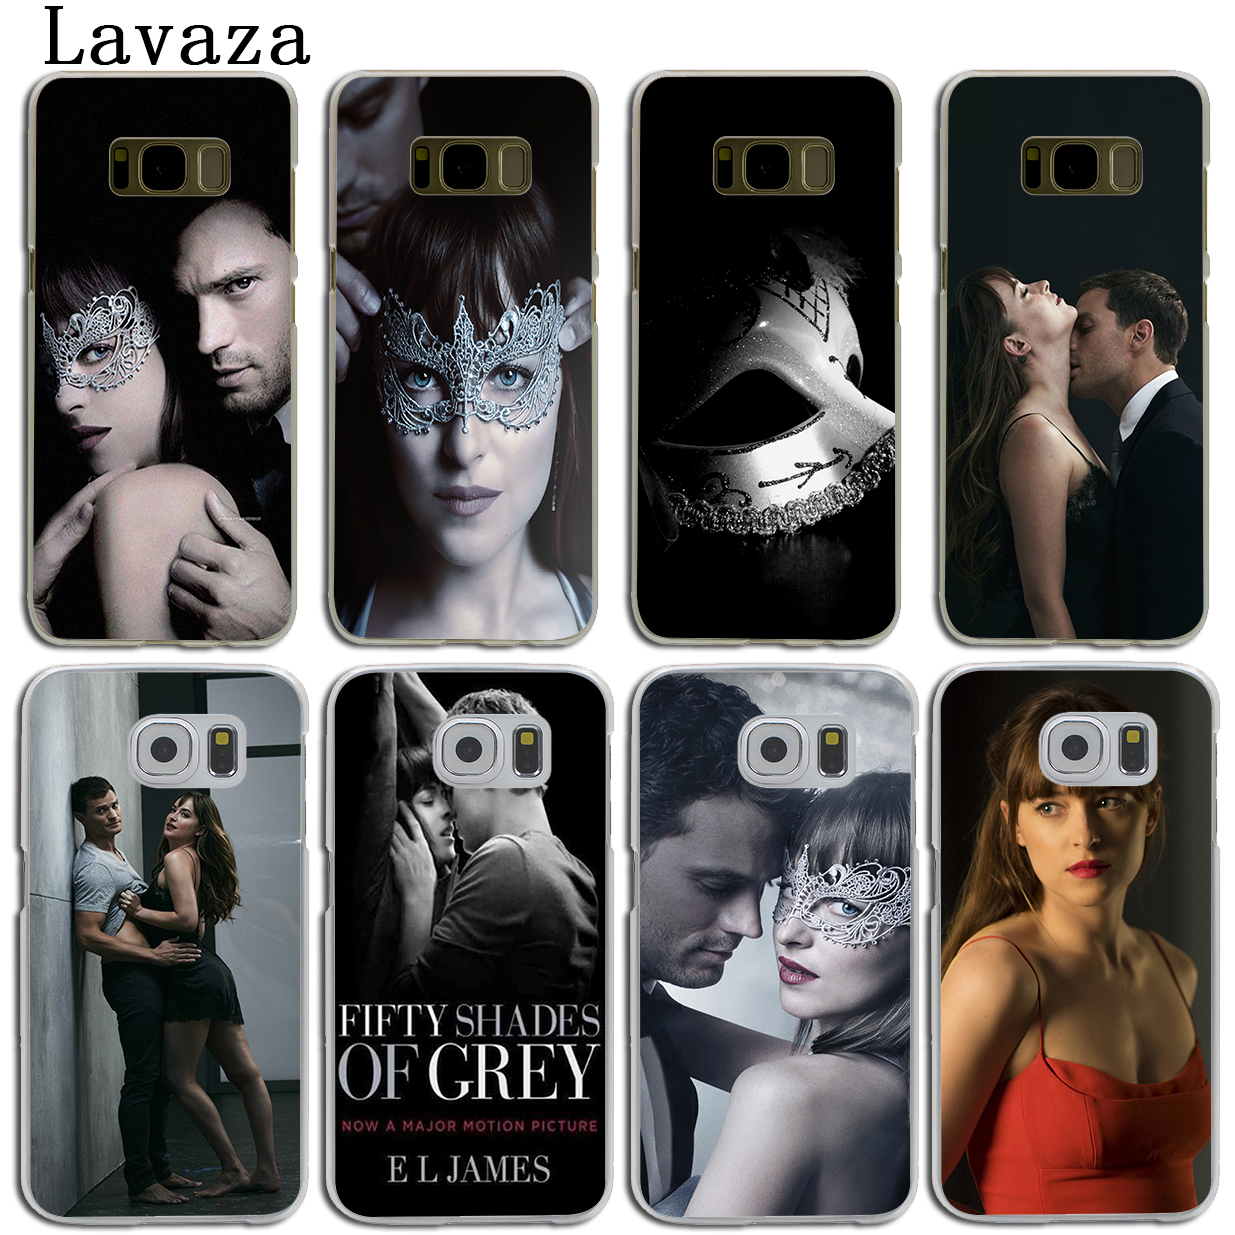 Lavaza Fifty Shades Darker of grey freed Hard Phone Shell Case for Samsung Galaxy S7 S6 Edge S3 S4 S5 & Mini S8 S9 Plus Cover